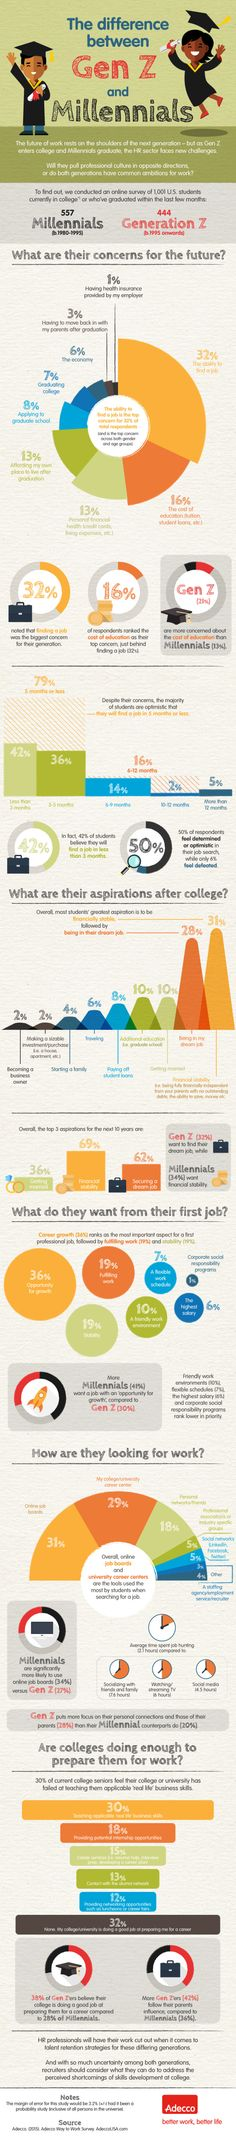 The Difference Between Gen Z And Millennials In The Workforce